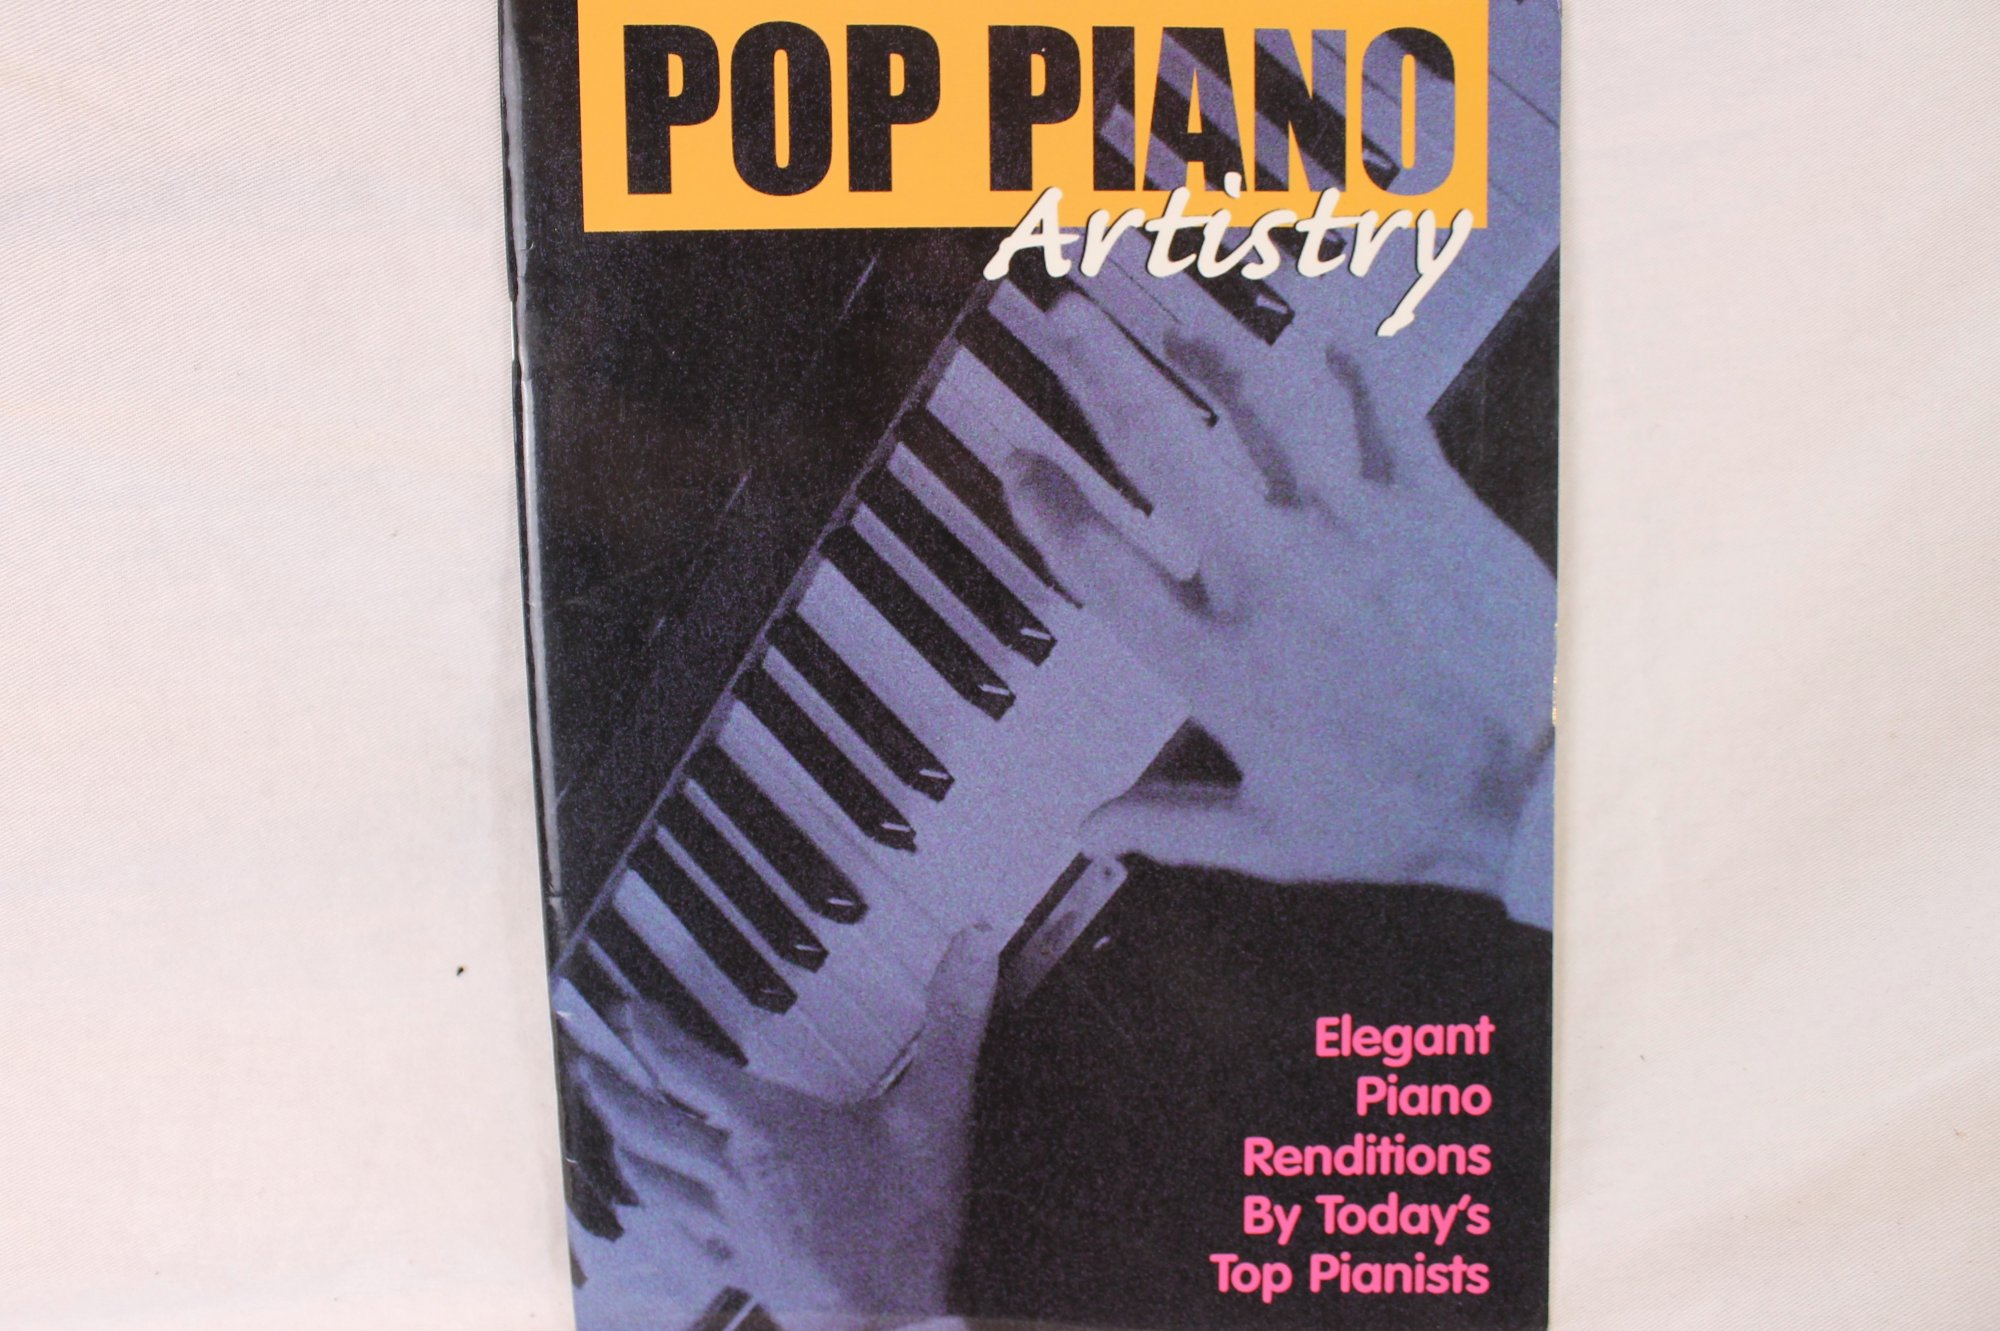 Pop Piano Artistry: Elegant Piano Renditions by Today's Top Pianists